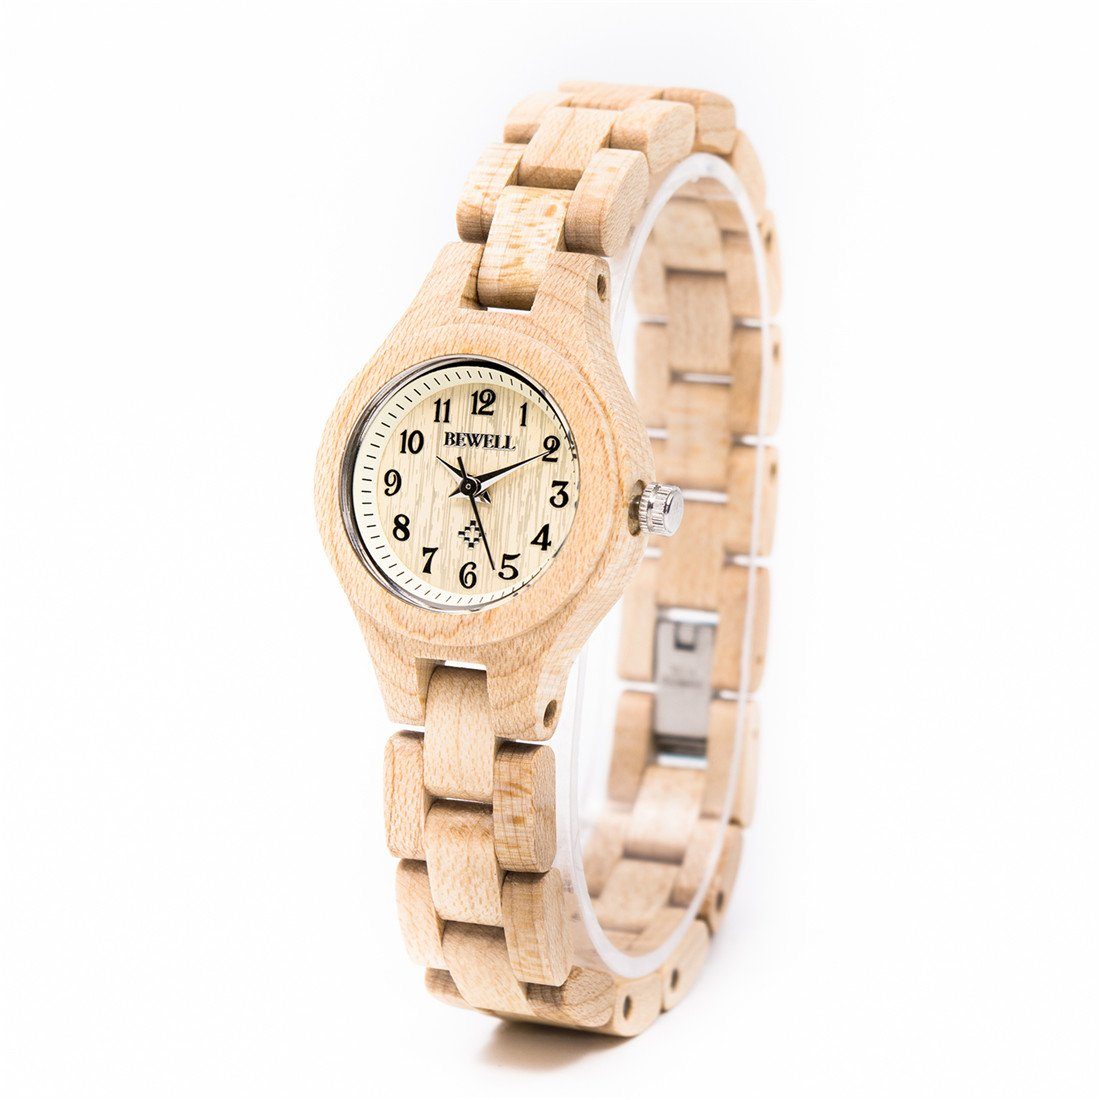 Bewell Cute Light Weight Wood Students Girls Watch Quartz Movement Women's Slim Wooden Wrist Watches